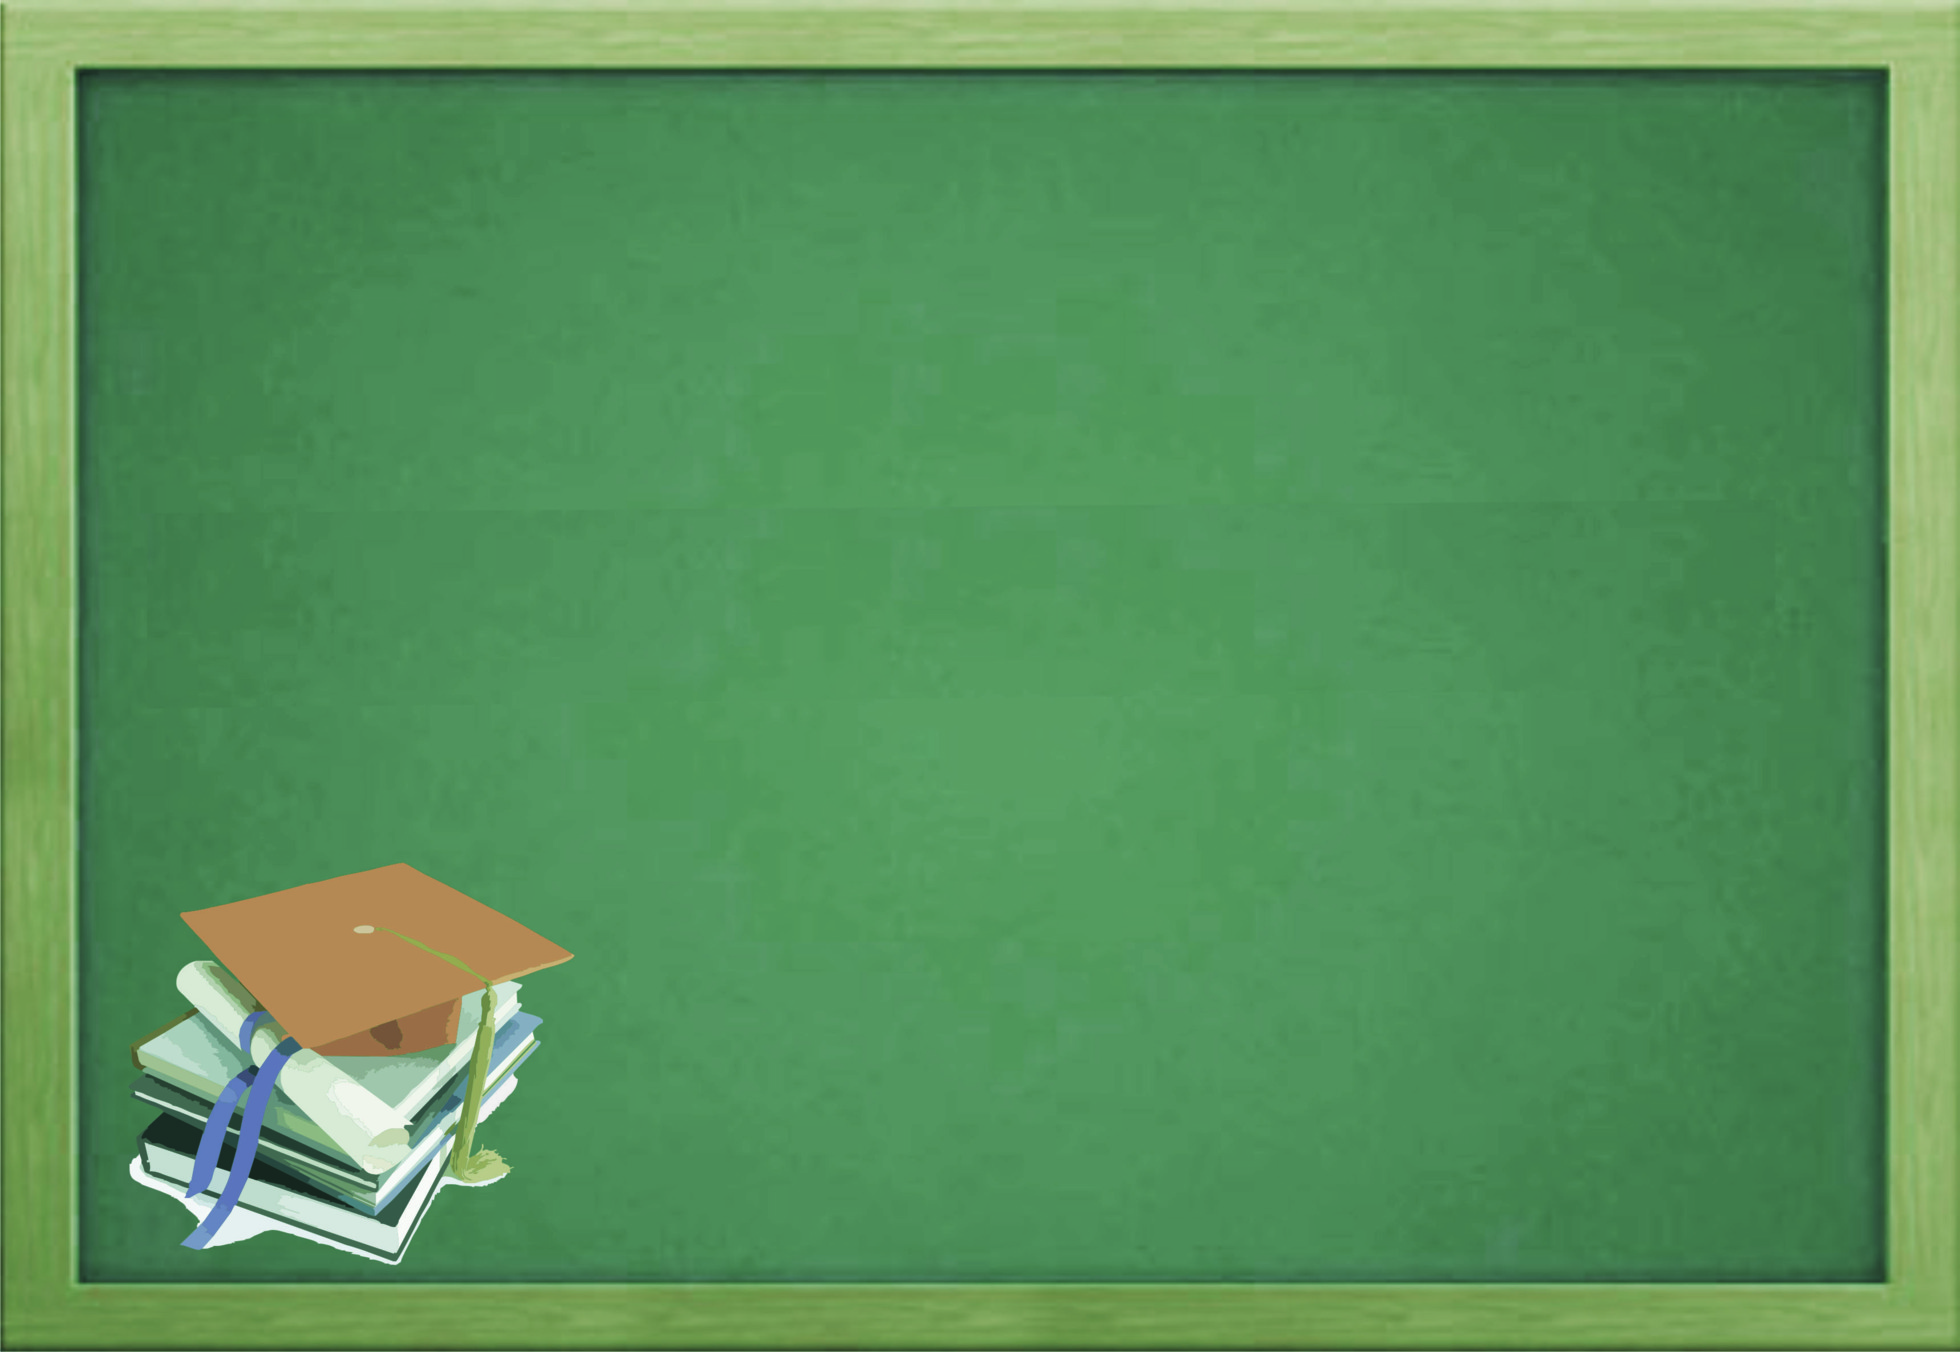 School Board Powerpoint Background Education Pictures 1960x1352